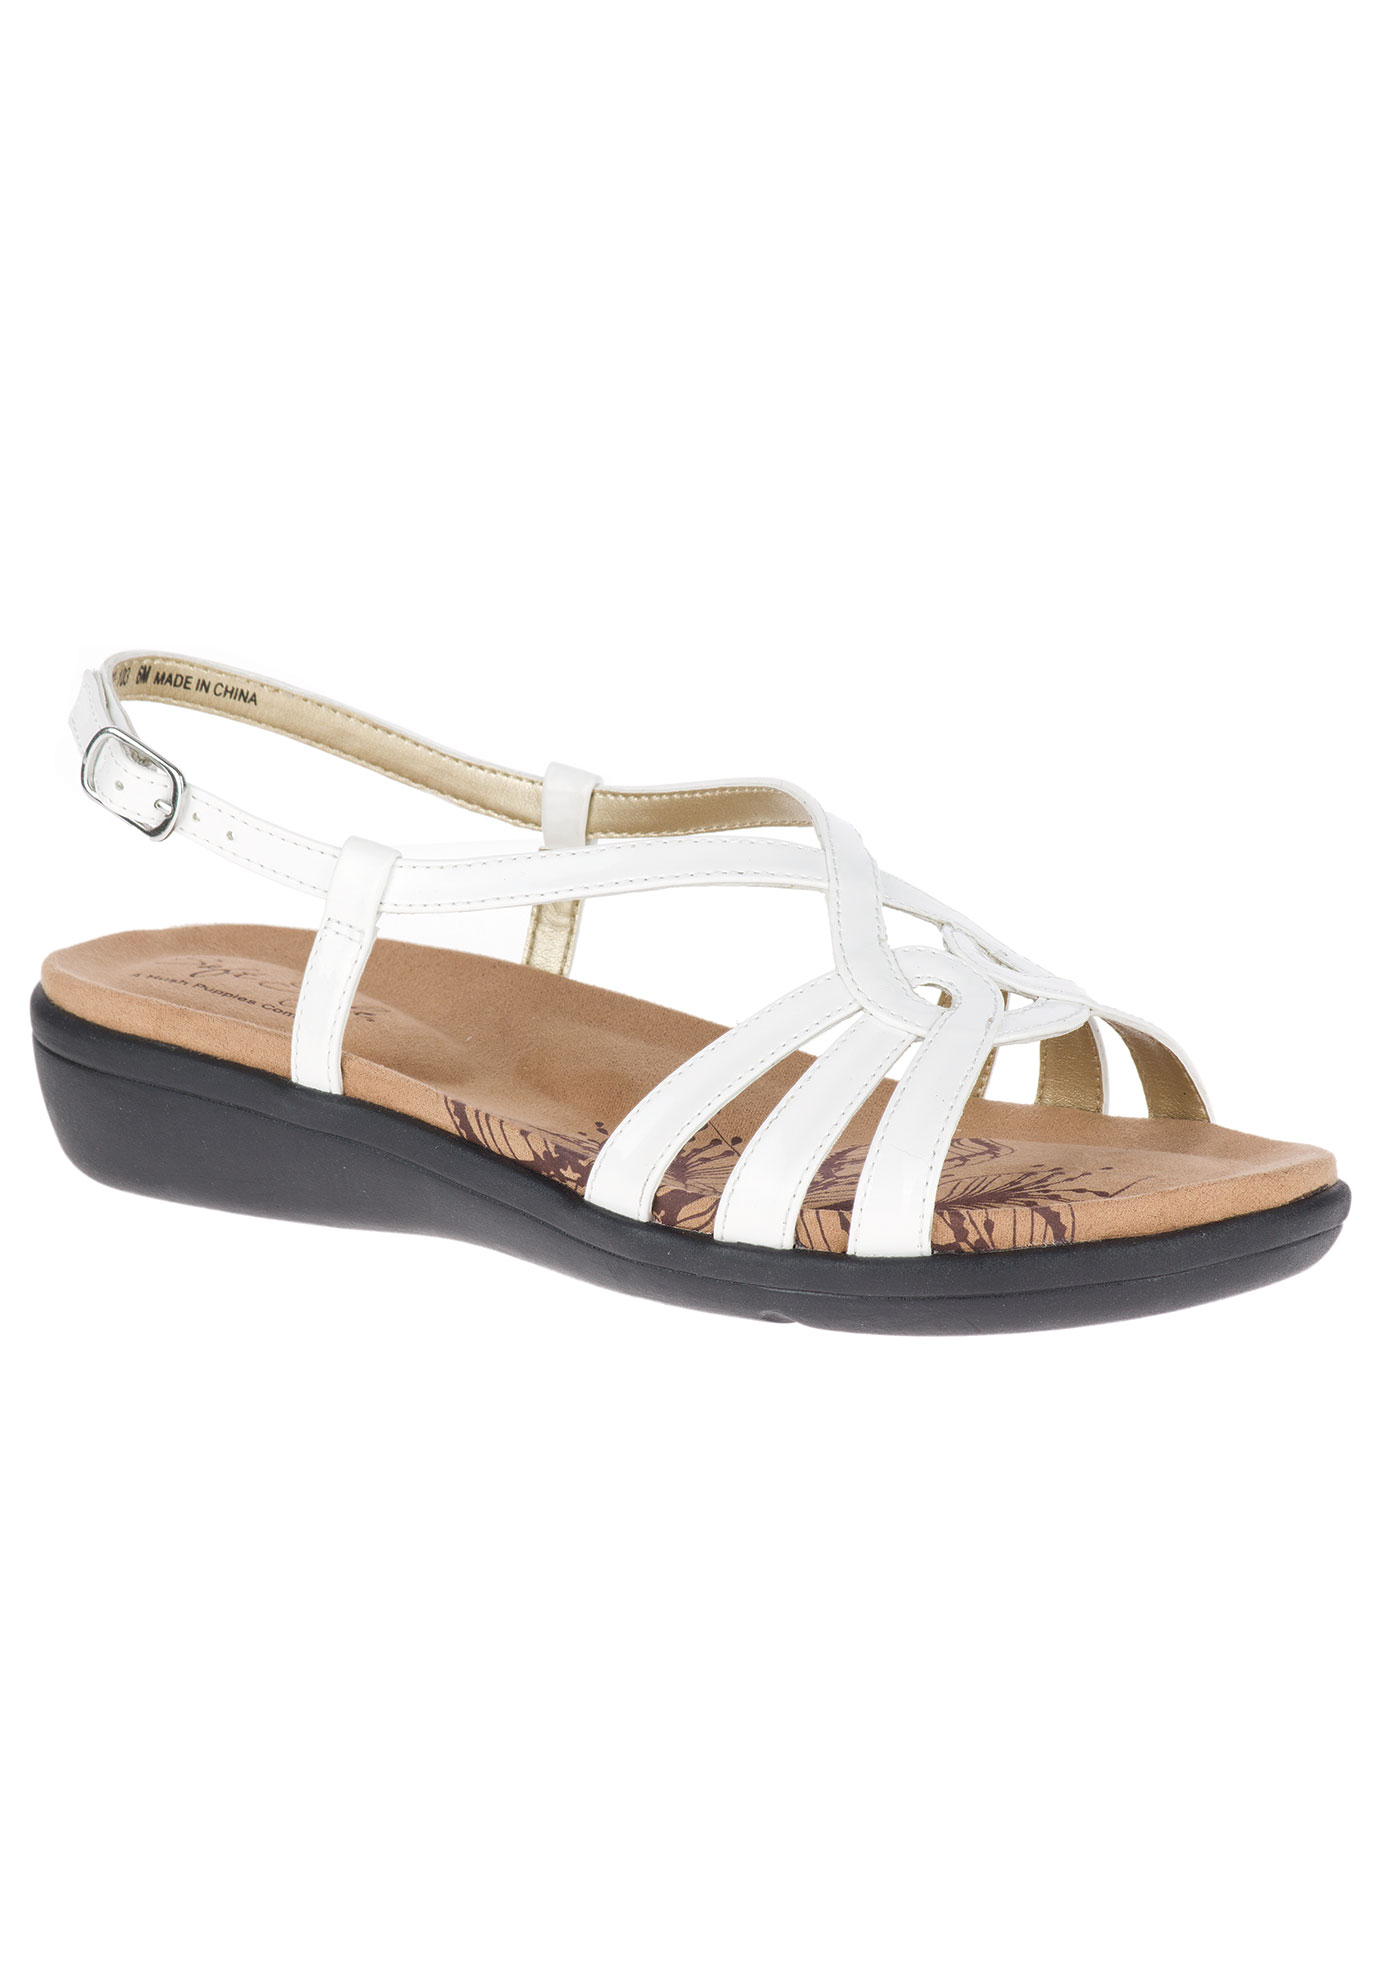 Patrese Sandals by Soft Style®,